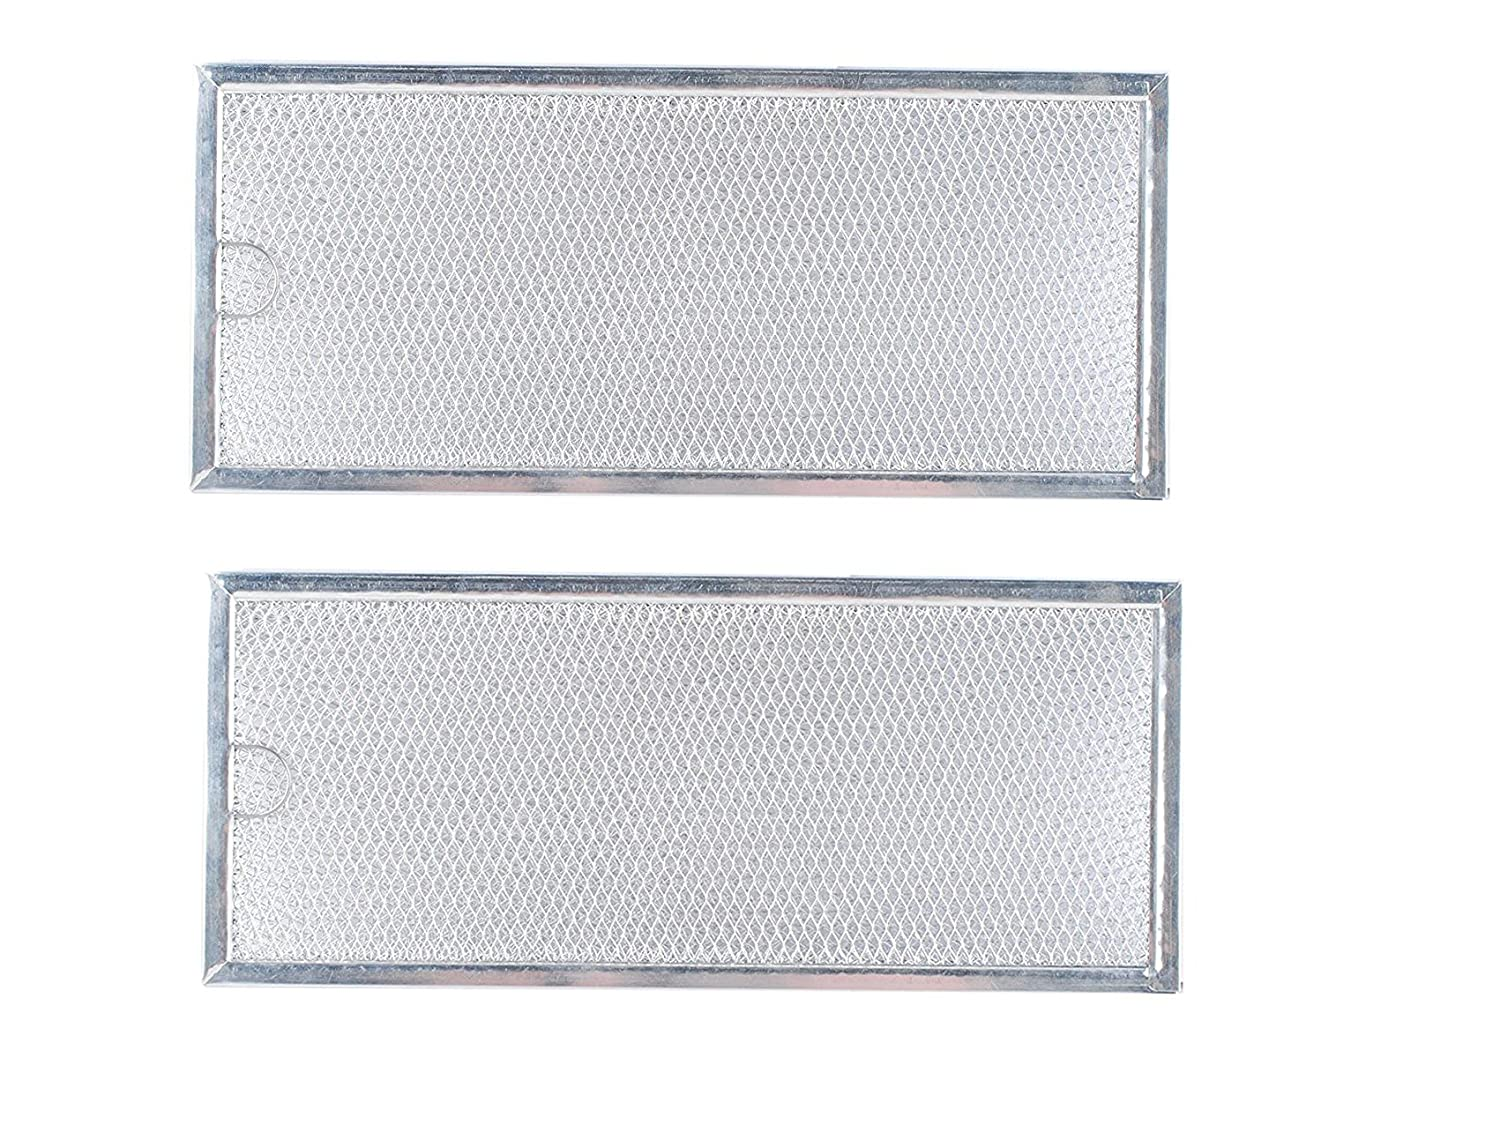 WB06X10596 Microwave Grease Filter Replacement Replace for Many GE Microwaves by Wadoy(2-Pack)